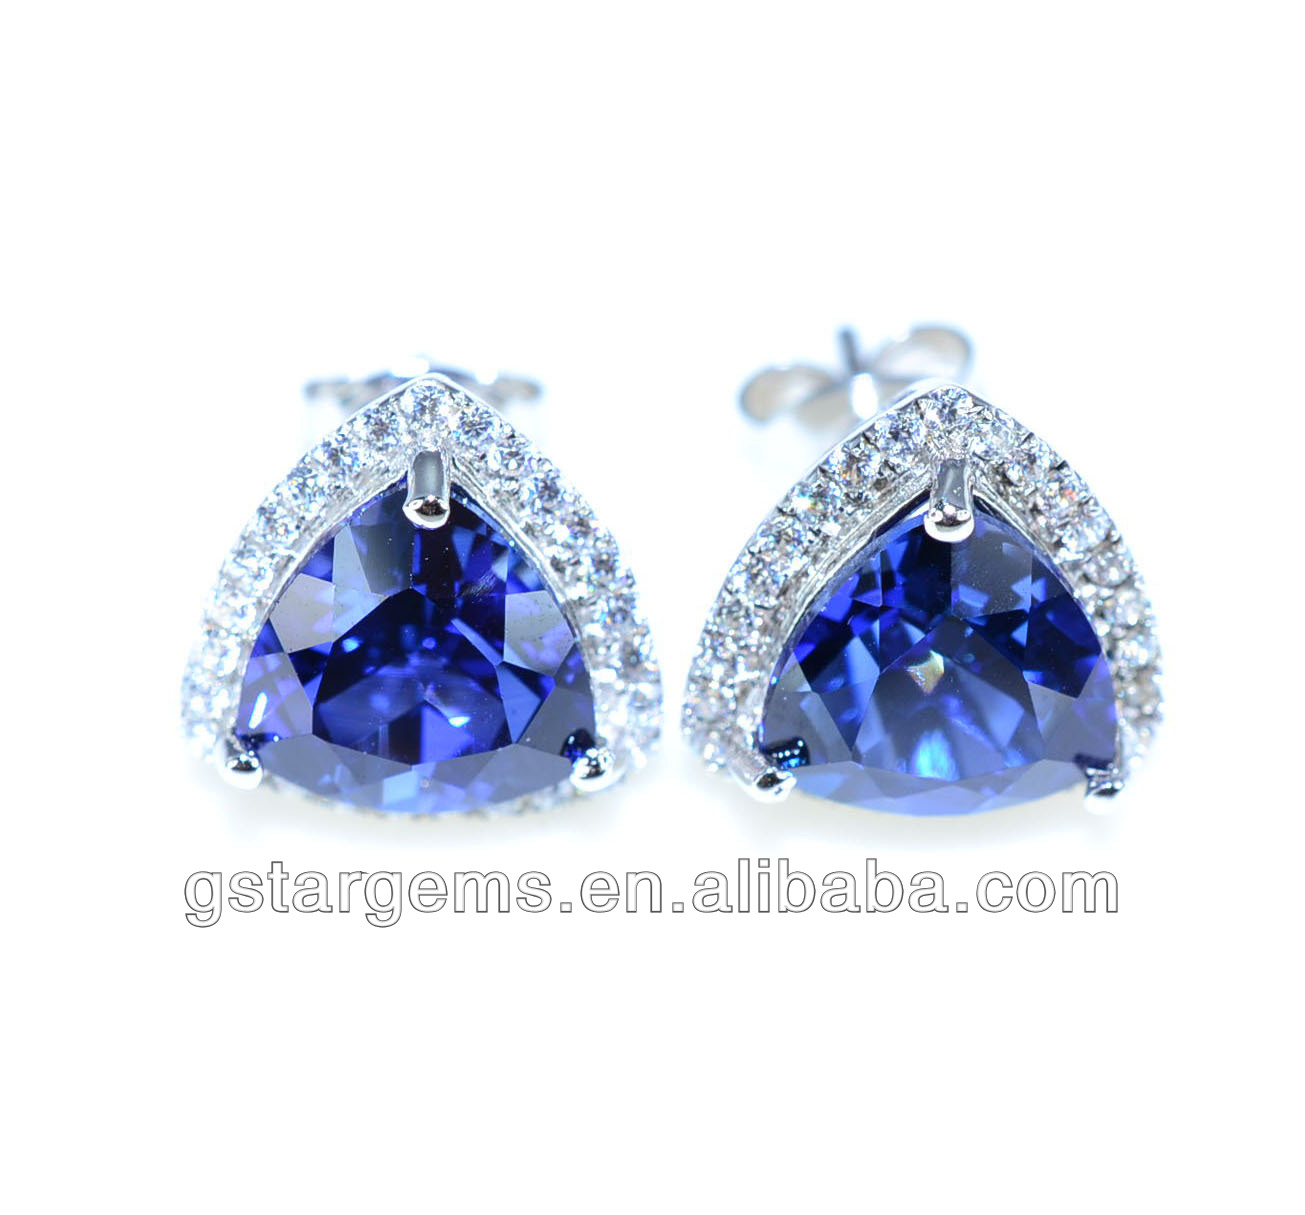 925 Stering Silver Created jewelry Blue Sapphire Set Gemstone Jewelry Hong Kong Wholesale